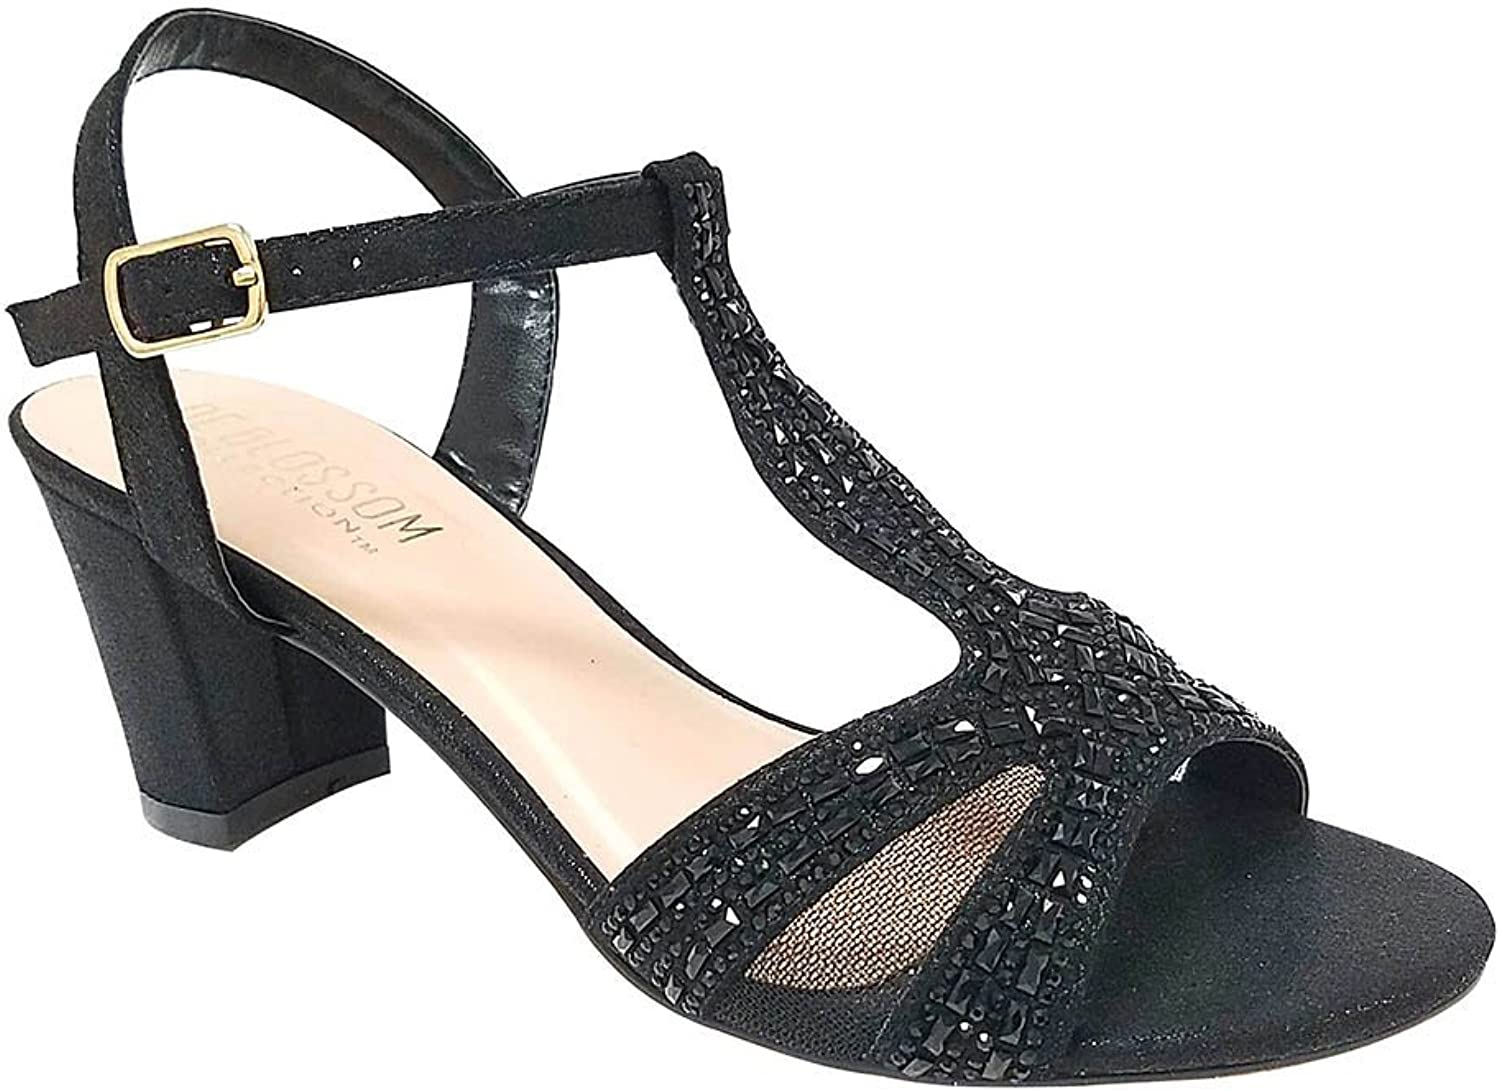 De Blossom Collection Women's Rhinestone Embellished T-Strap Low Chunky Heel Dress Sandal